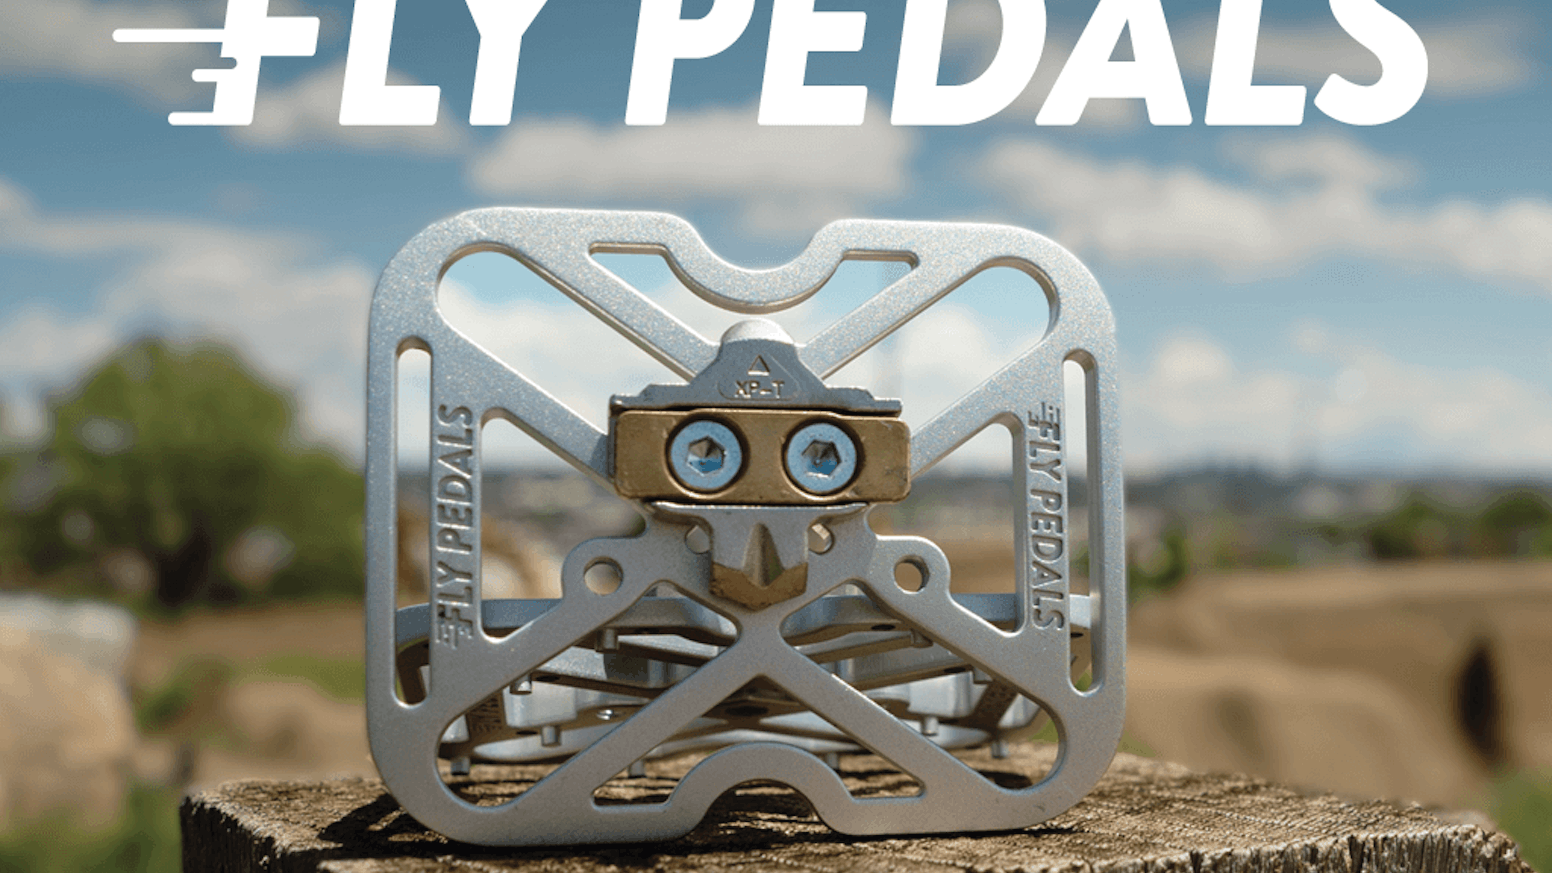 a8deeba06617 Convert clipless pedals to platform pedals instantly for casual riding.  Version 2 : lighter,